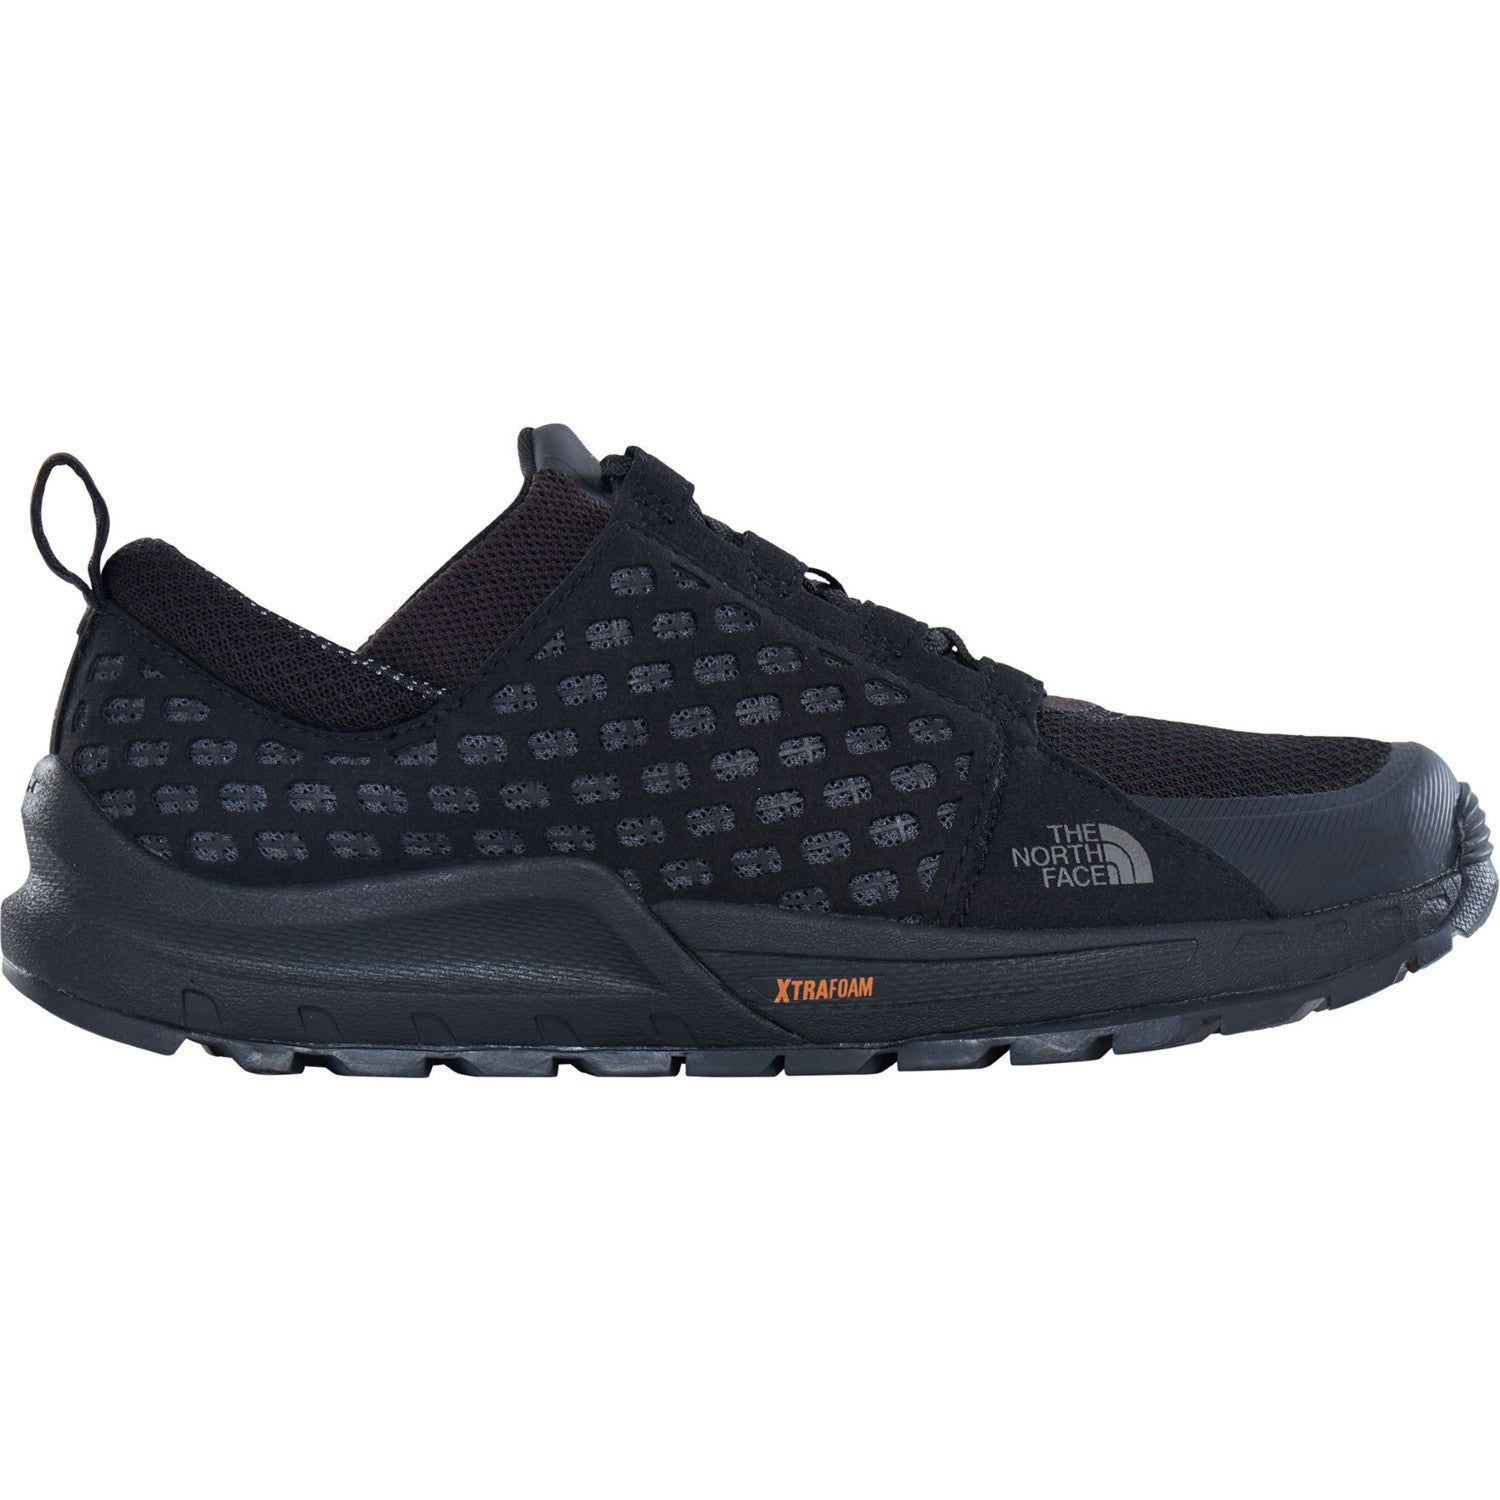 baeee8813 North Face Mountain Sneaker Shoes